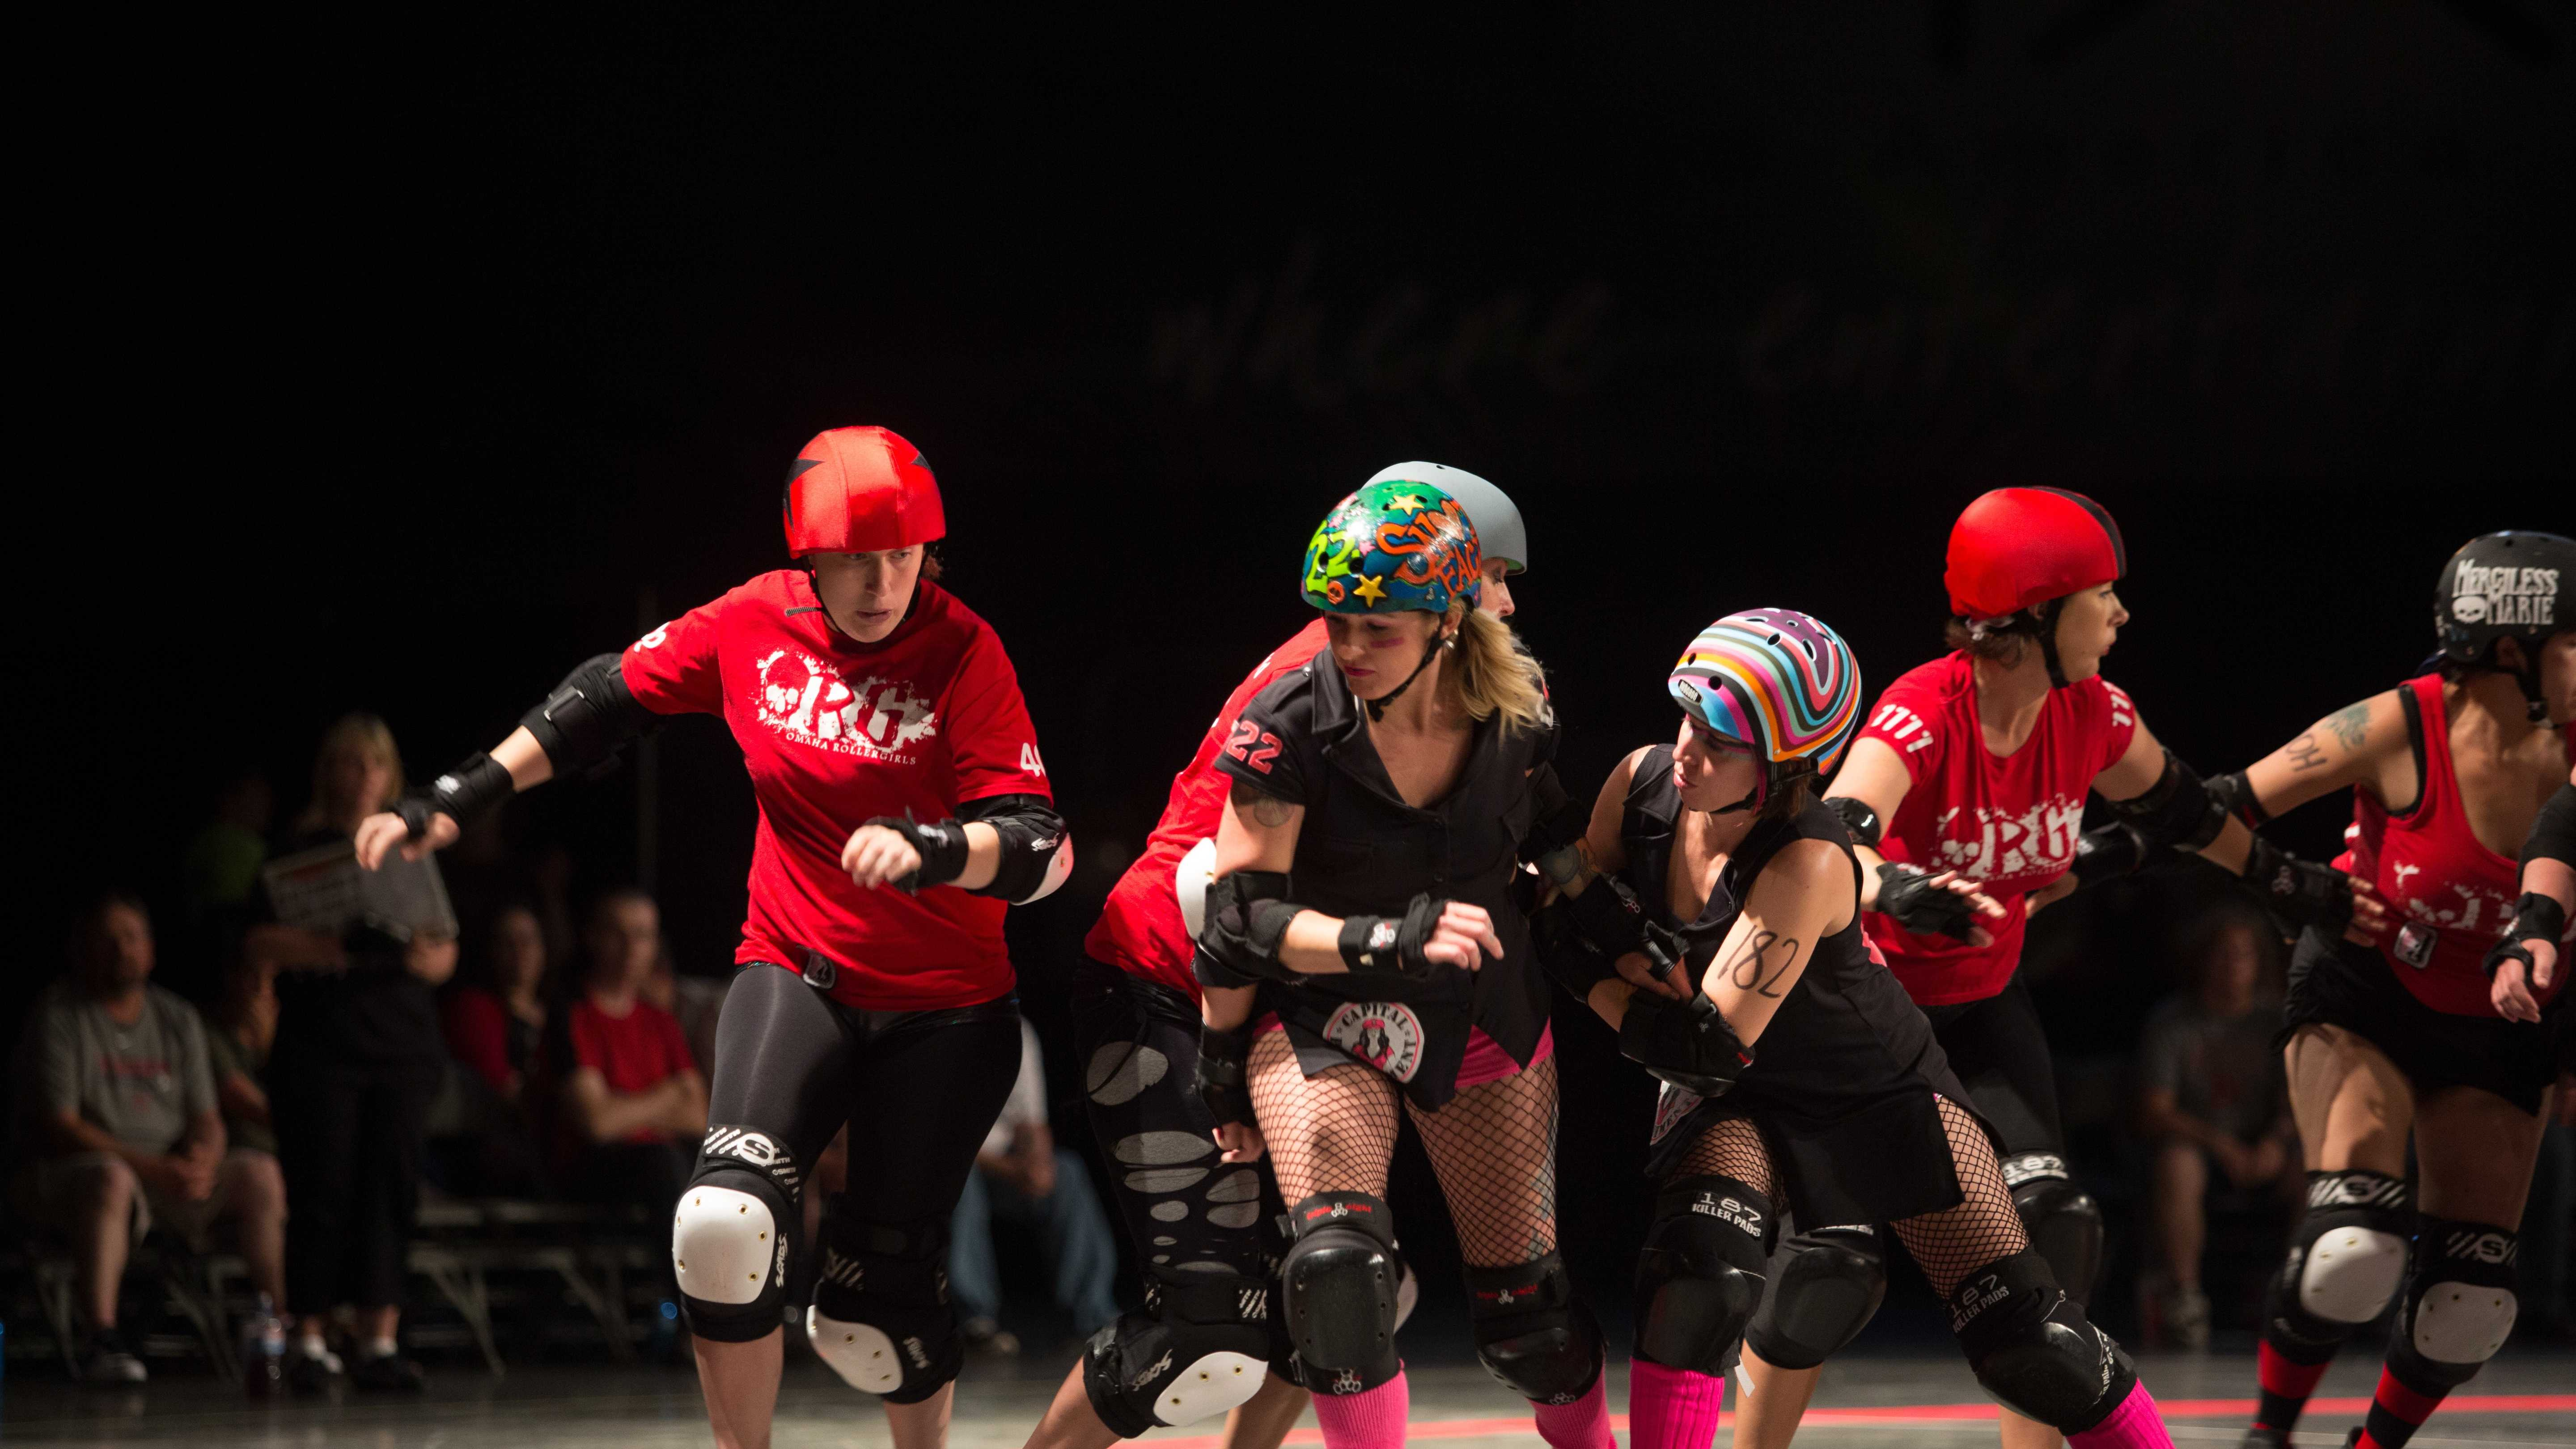 Omaha Rollergirls expect intense bout with rival No Coast Derby Girls